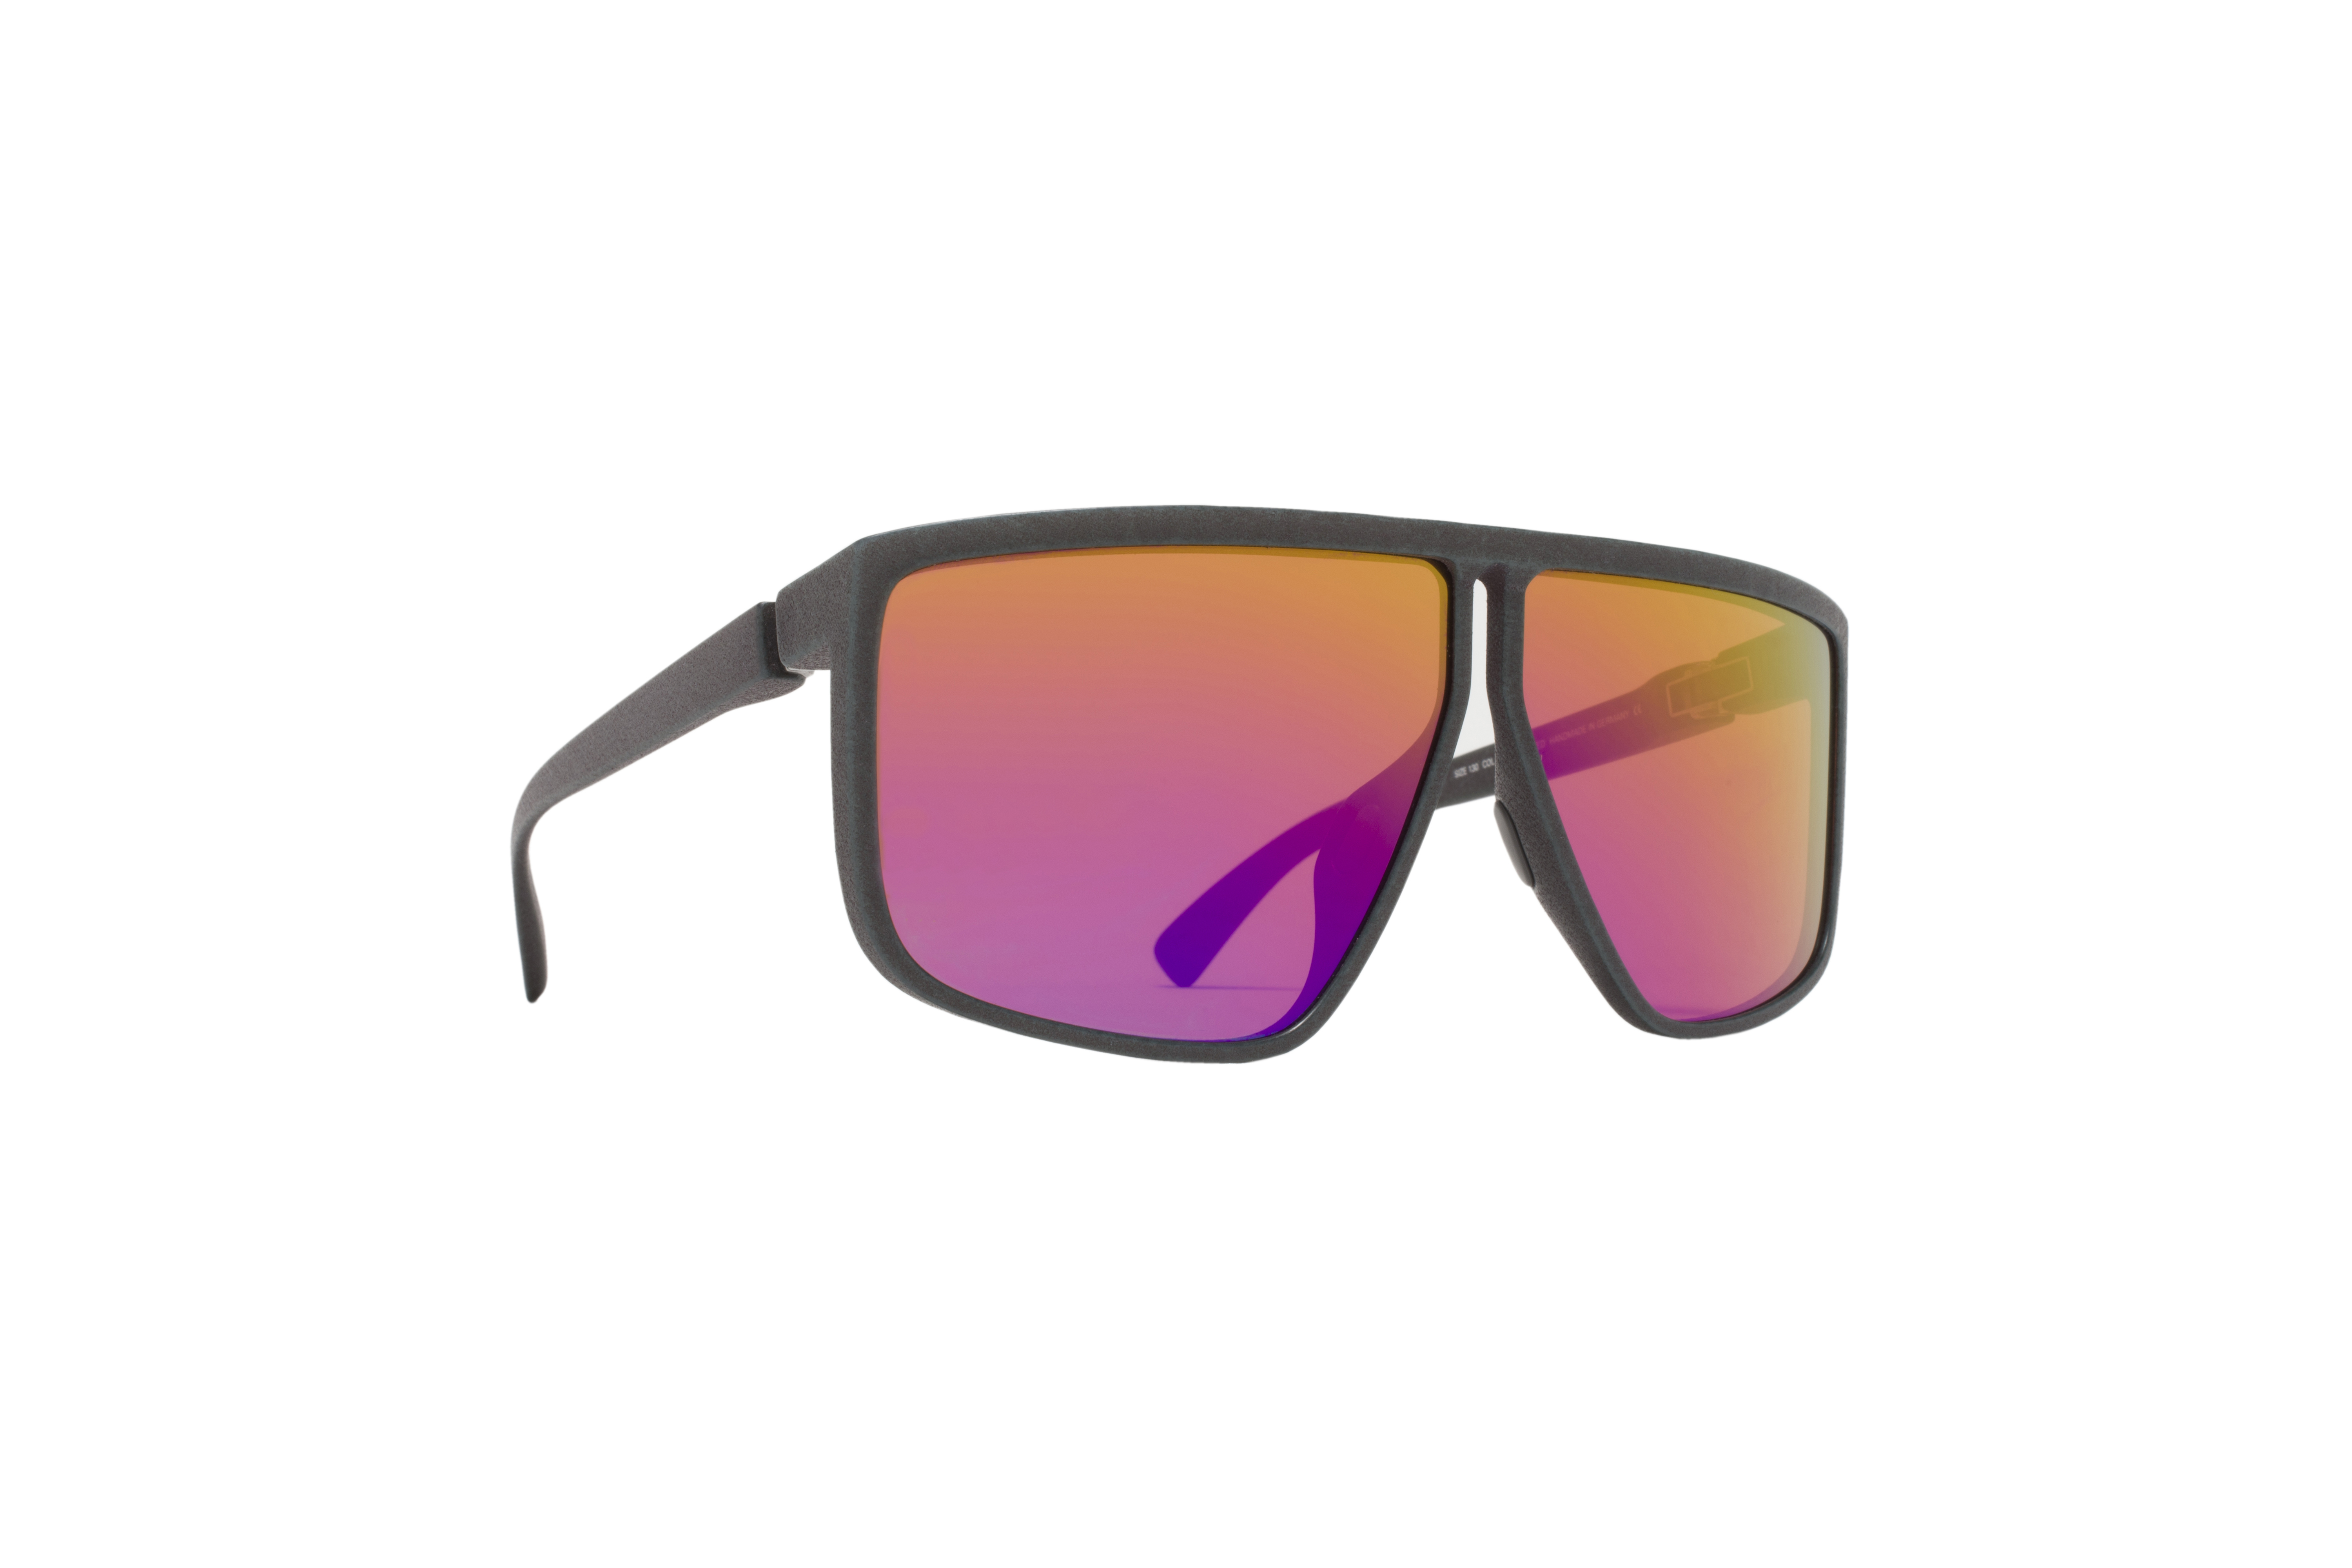 MYKITA Tc Tequila Md8 Storm Grey Dark Rainbow Shil